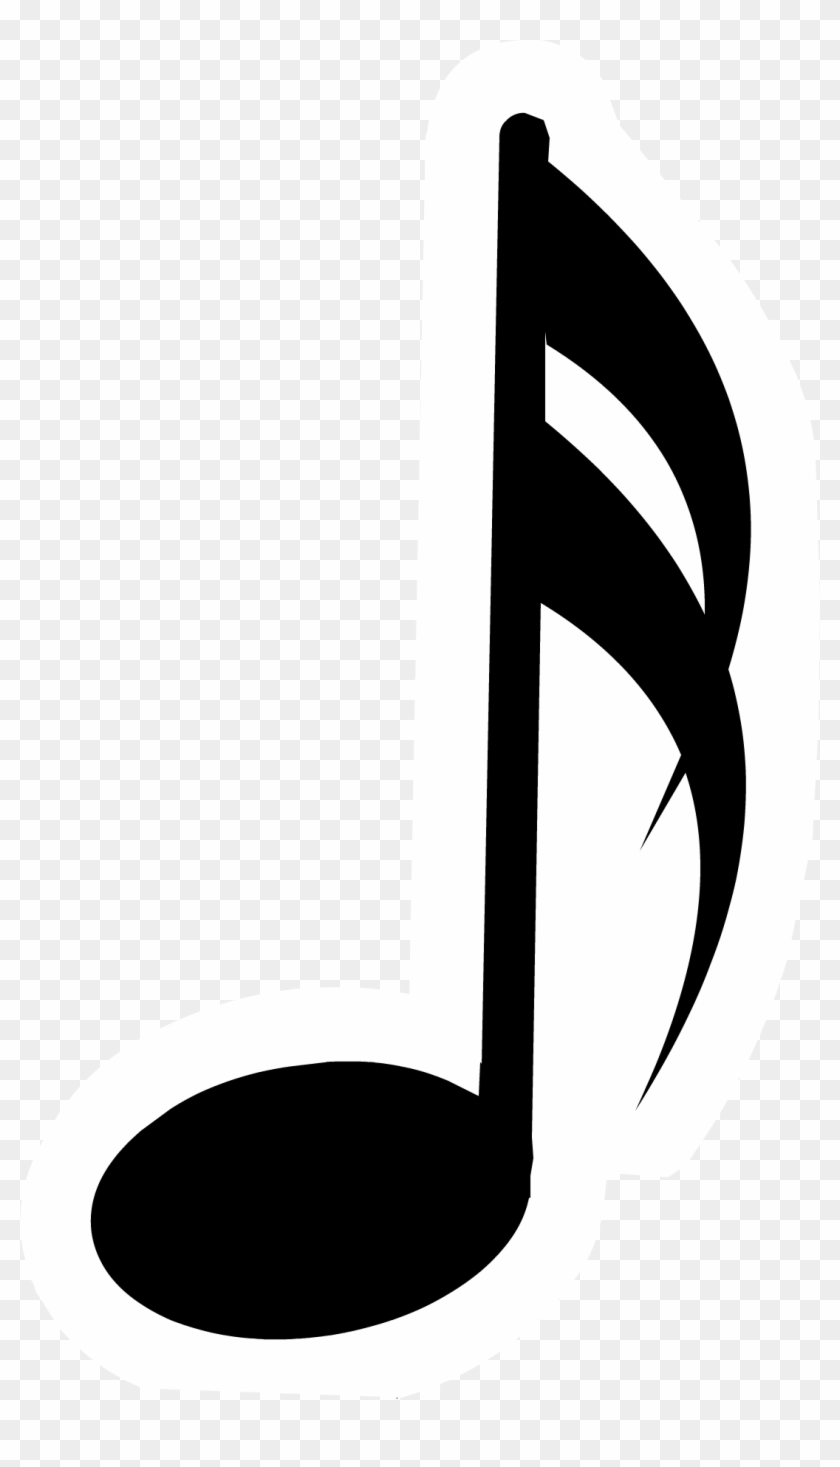 Music Note Png Free Download.